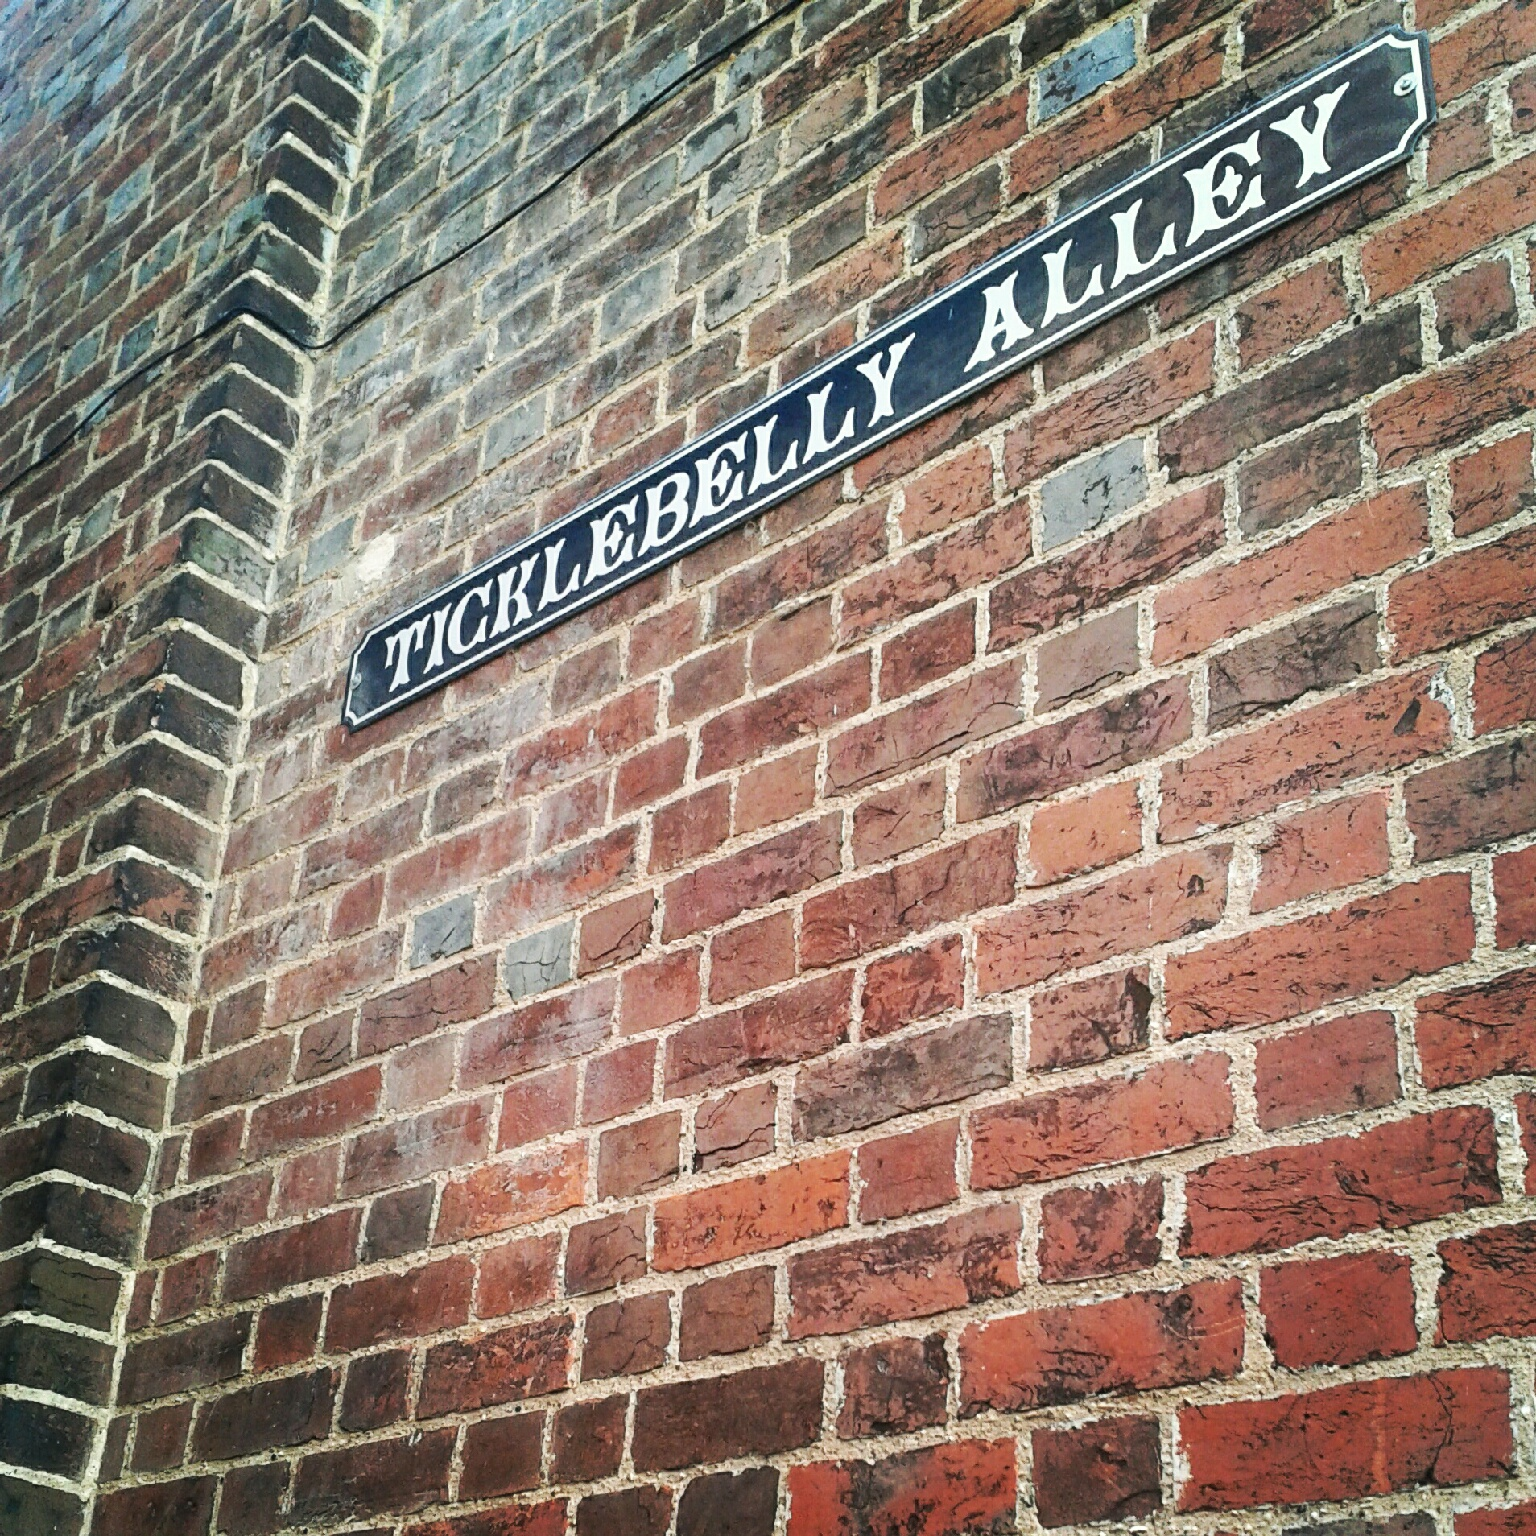 Ticklebelly Alley